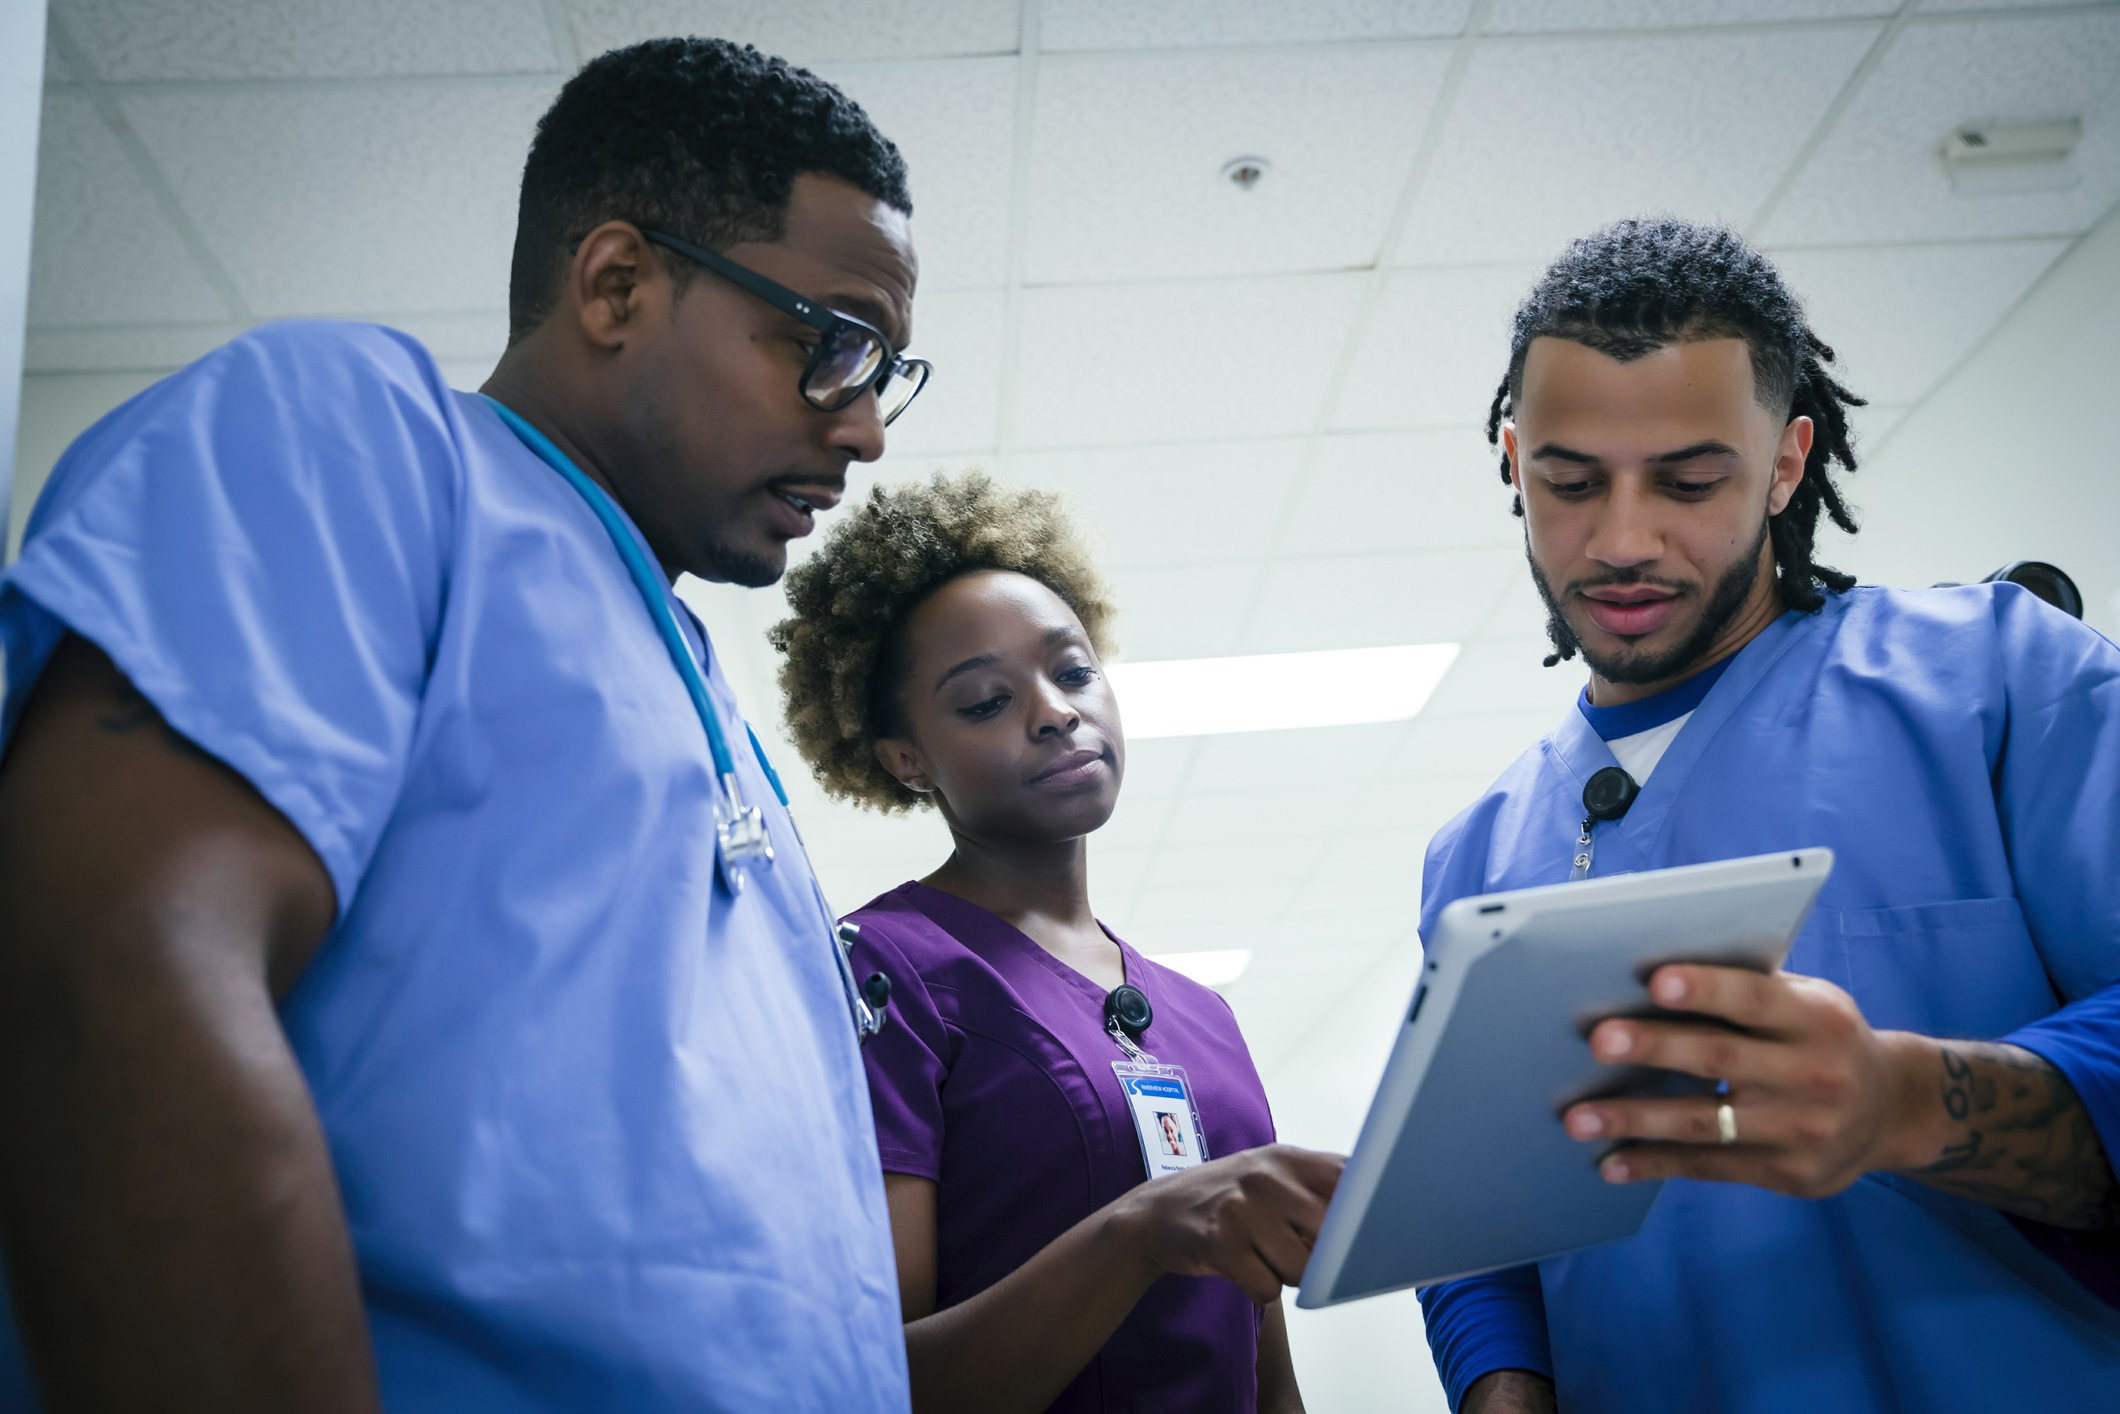 Nurses discussing digital tablet | Photo: Getty Images